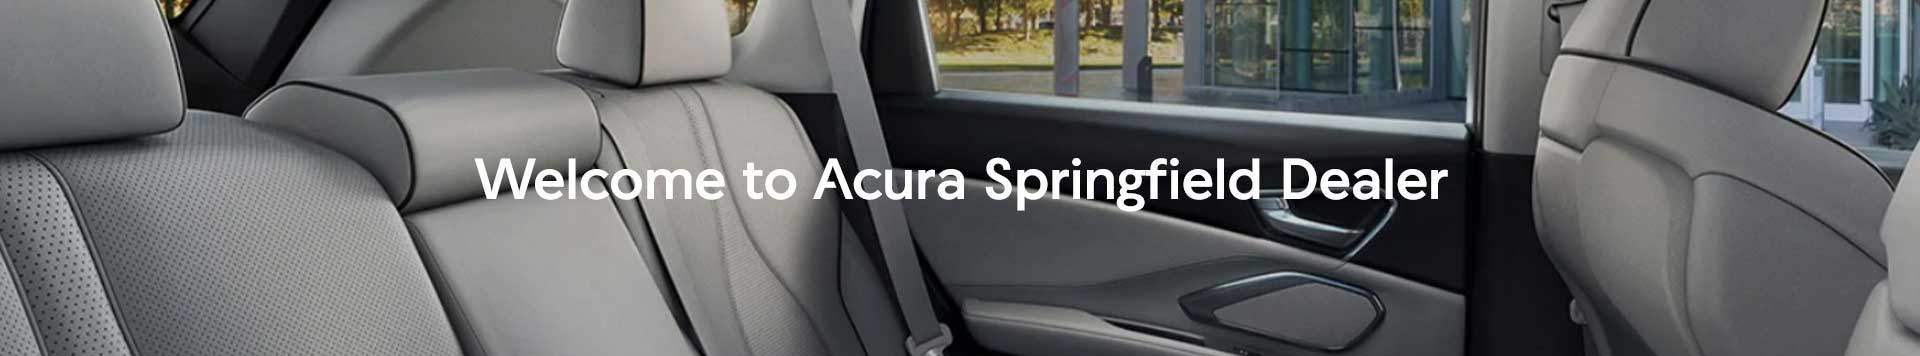 welcome to acura springfield dealer